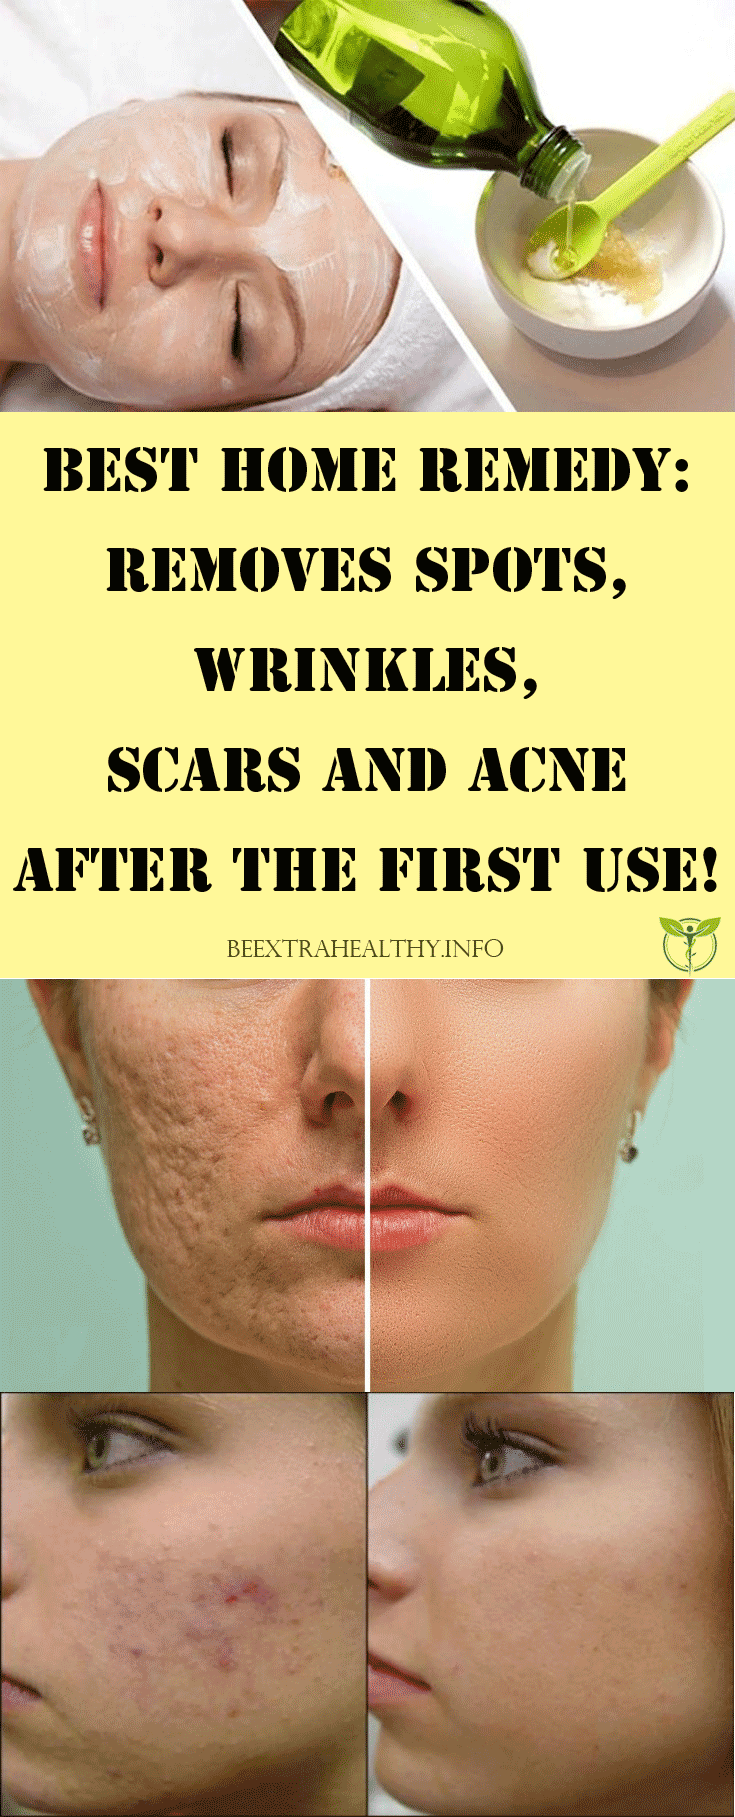 best home remedy removes spots wrinkles scars and acne after the